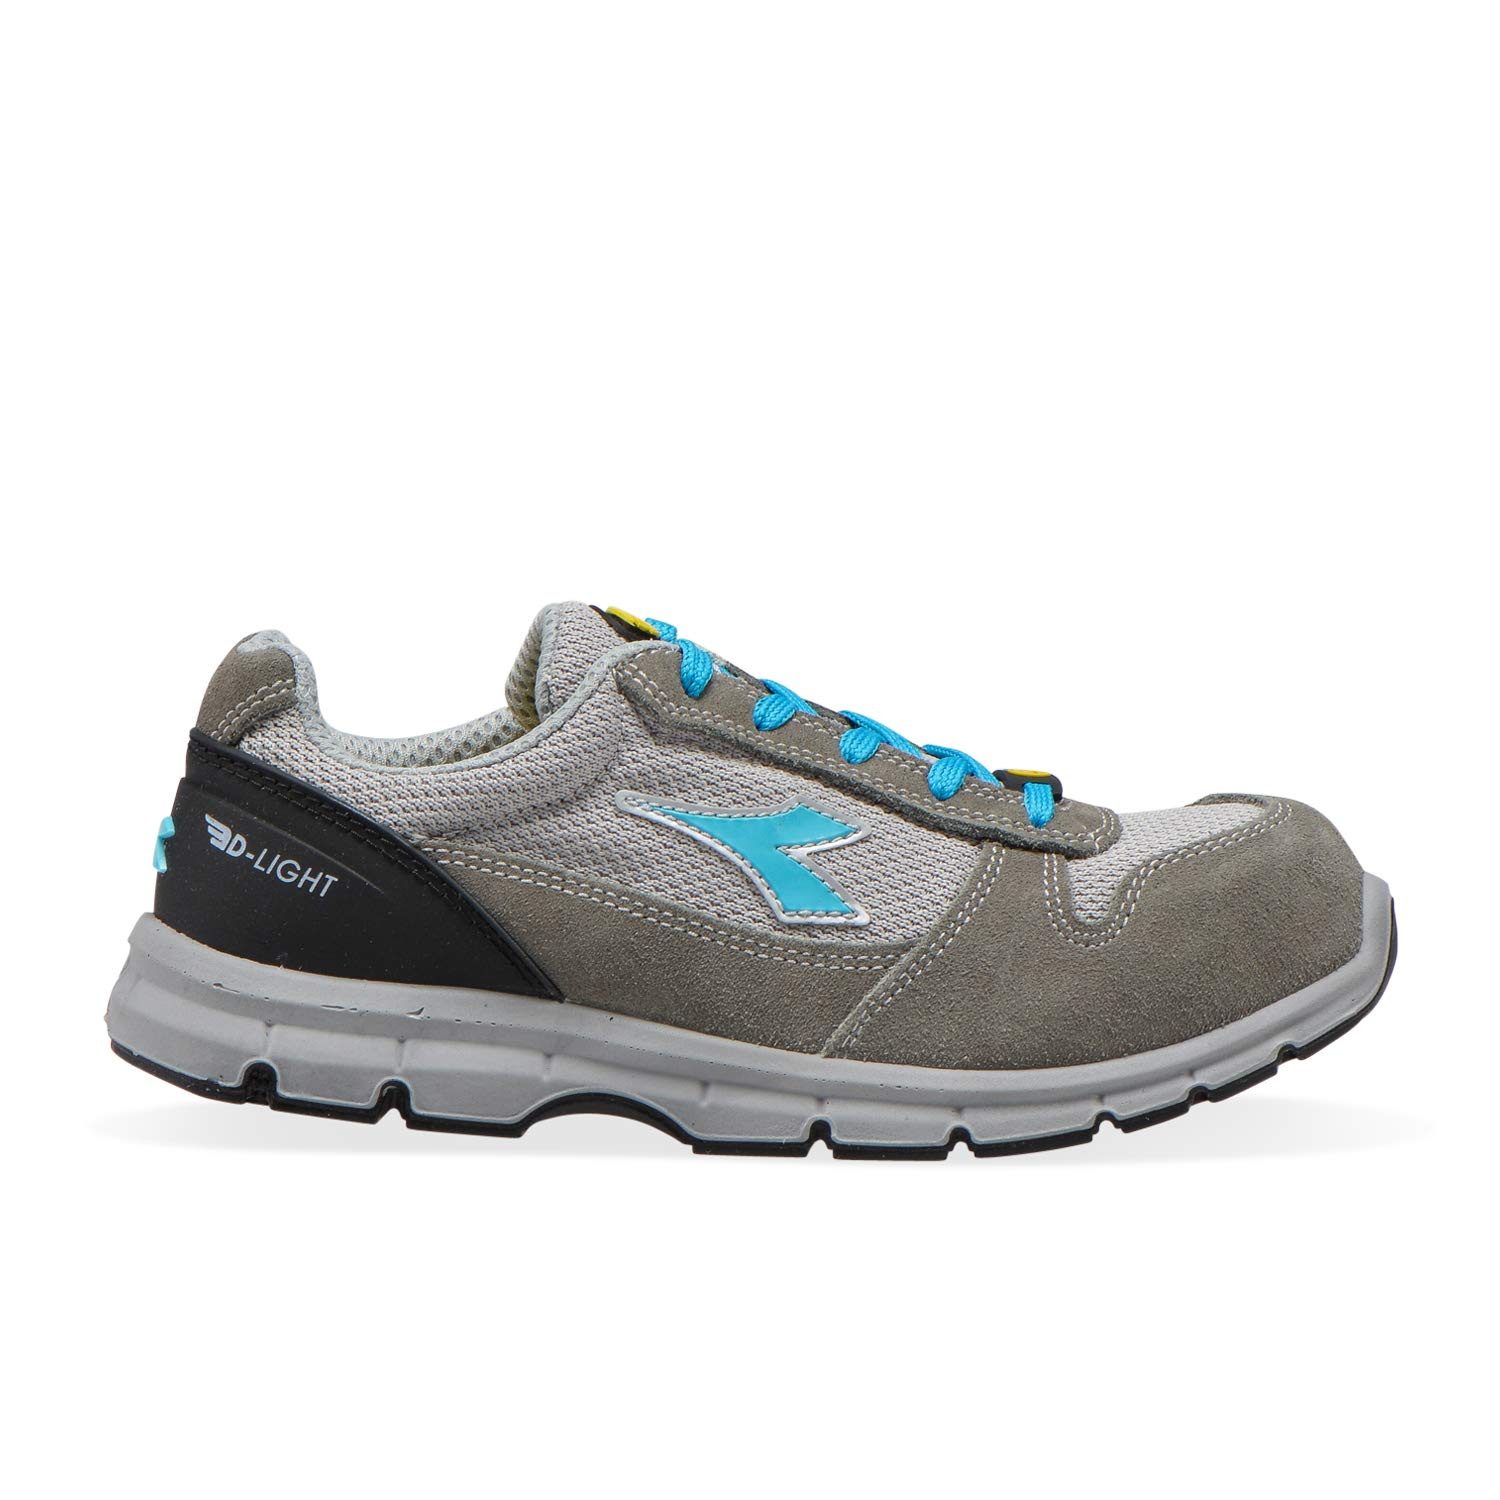 C8311 - Castlerock-scuba bluee Utility Diadora - Low Work shoes Run II Text ESD Low S1P SRC ESD for Men and Women IT 45